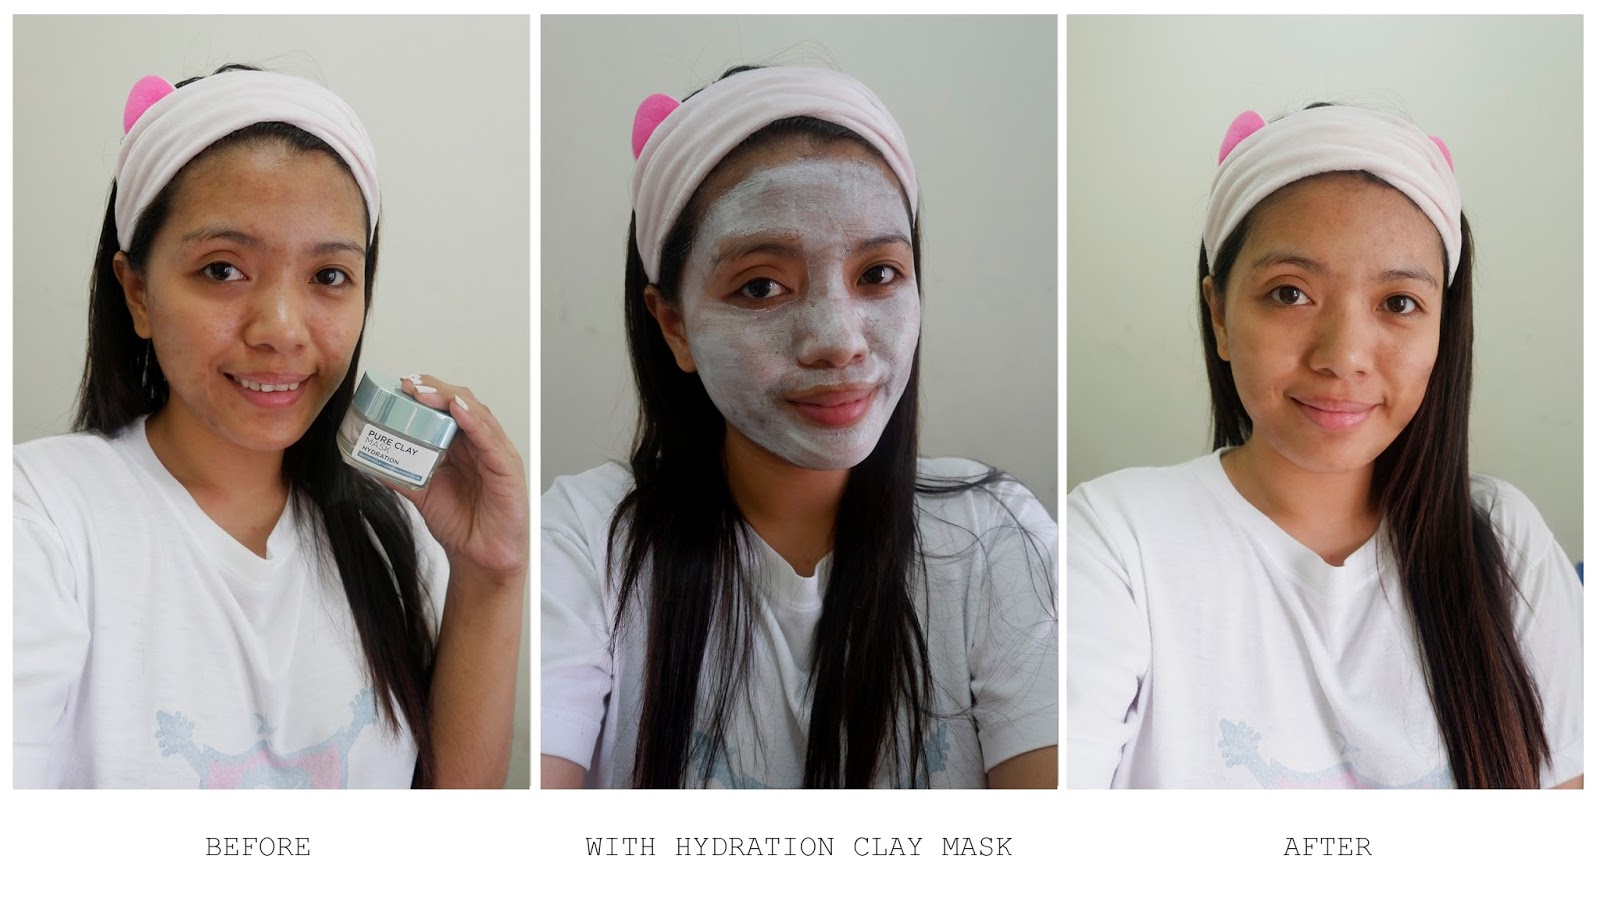 L'OREAL PURE CLAY MASK ANTI-PORES & HYDRATING REVIEW